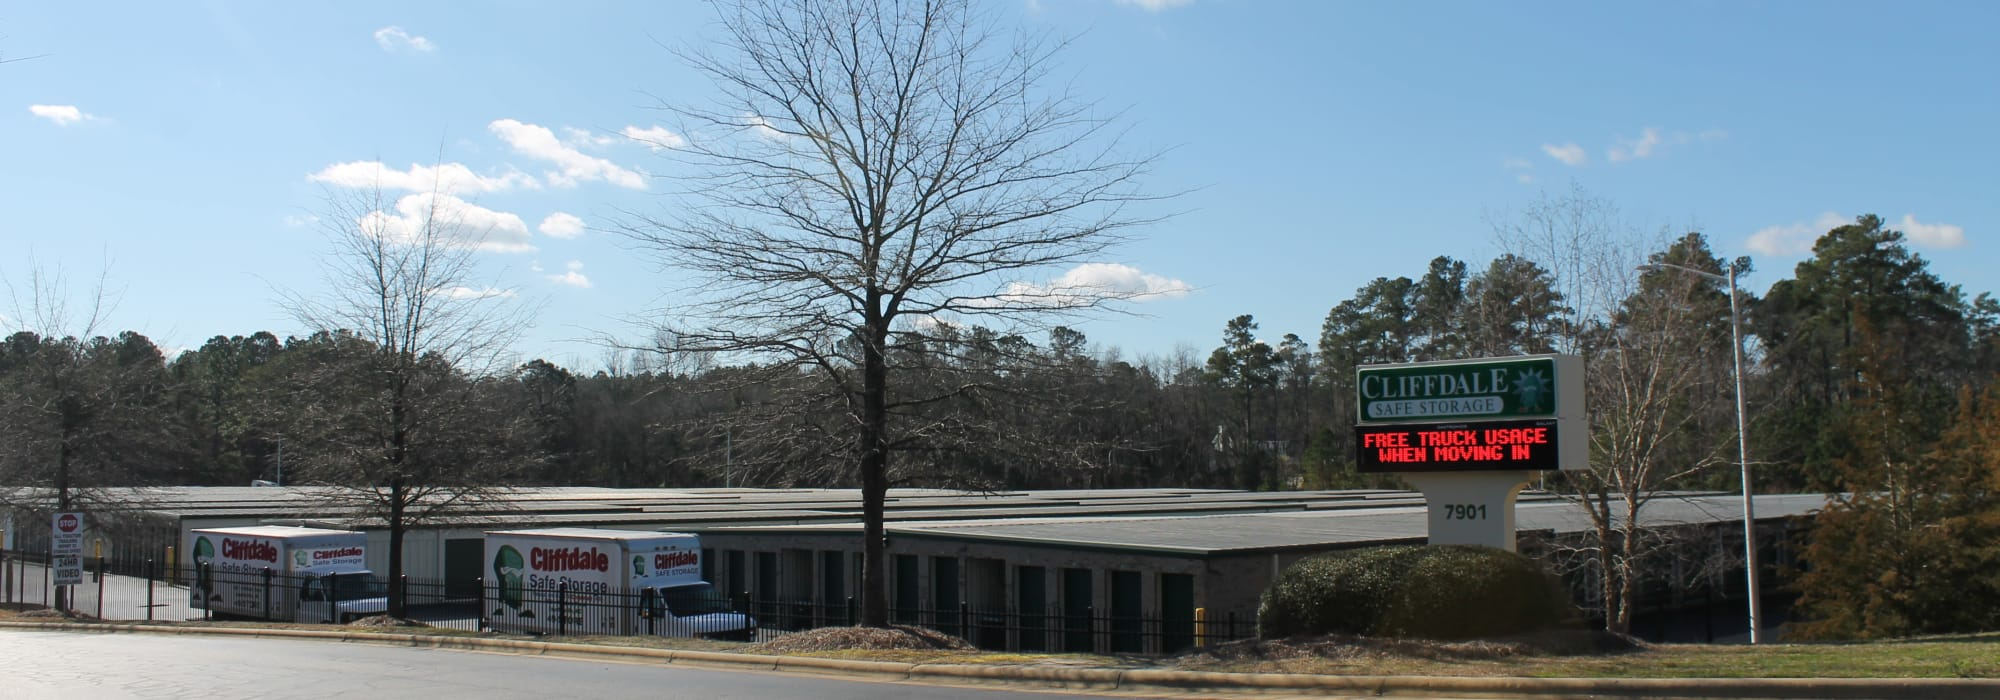 Exterior of Cliffdale Safe Storage in Fayetteville, North Carolina